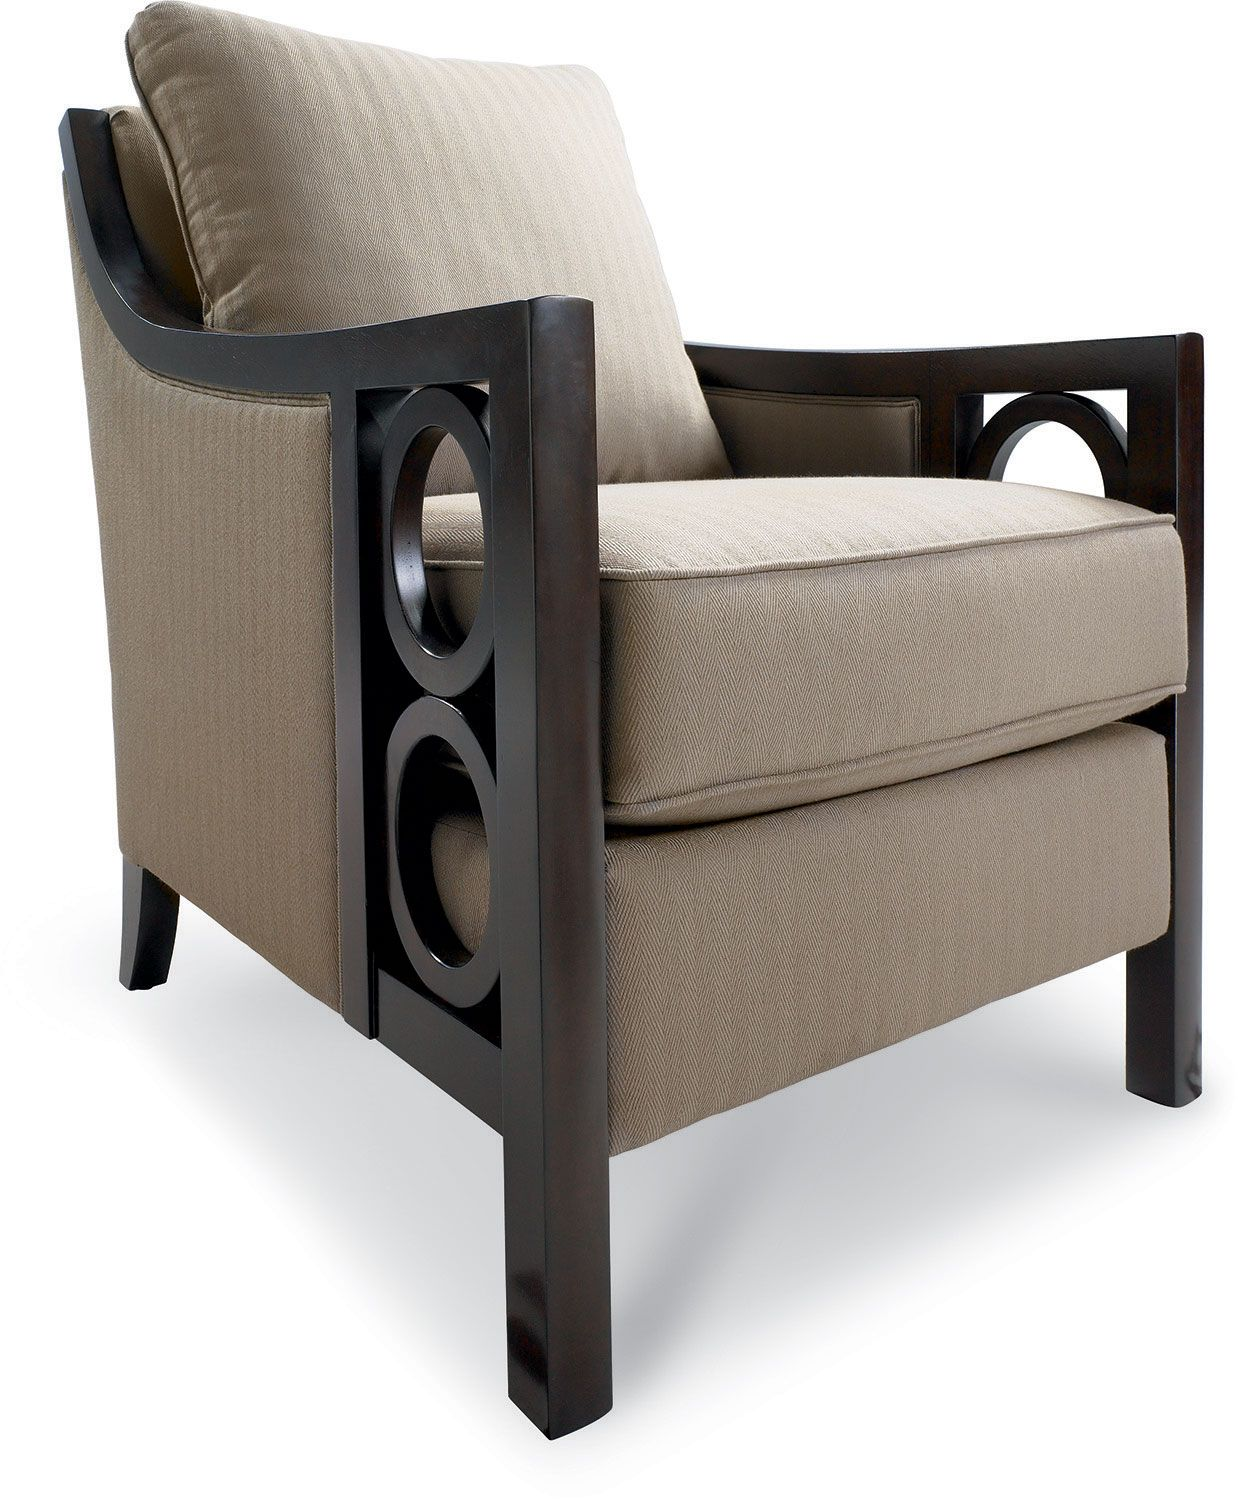 I Love This Chair Think It Is Lazy Boy They Have One Chairs For Living RoomDining